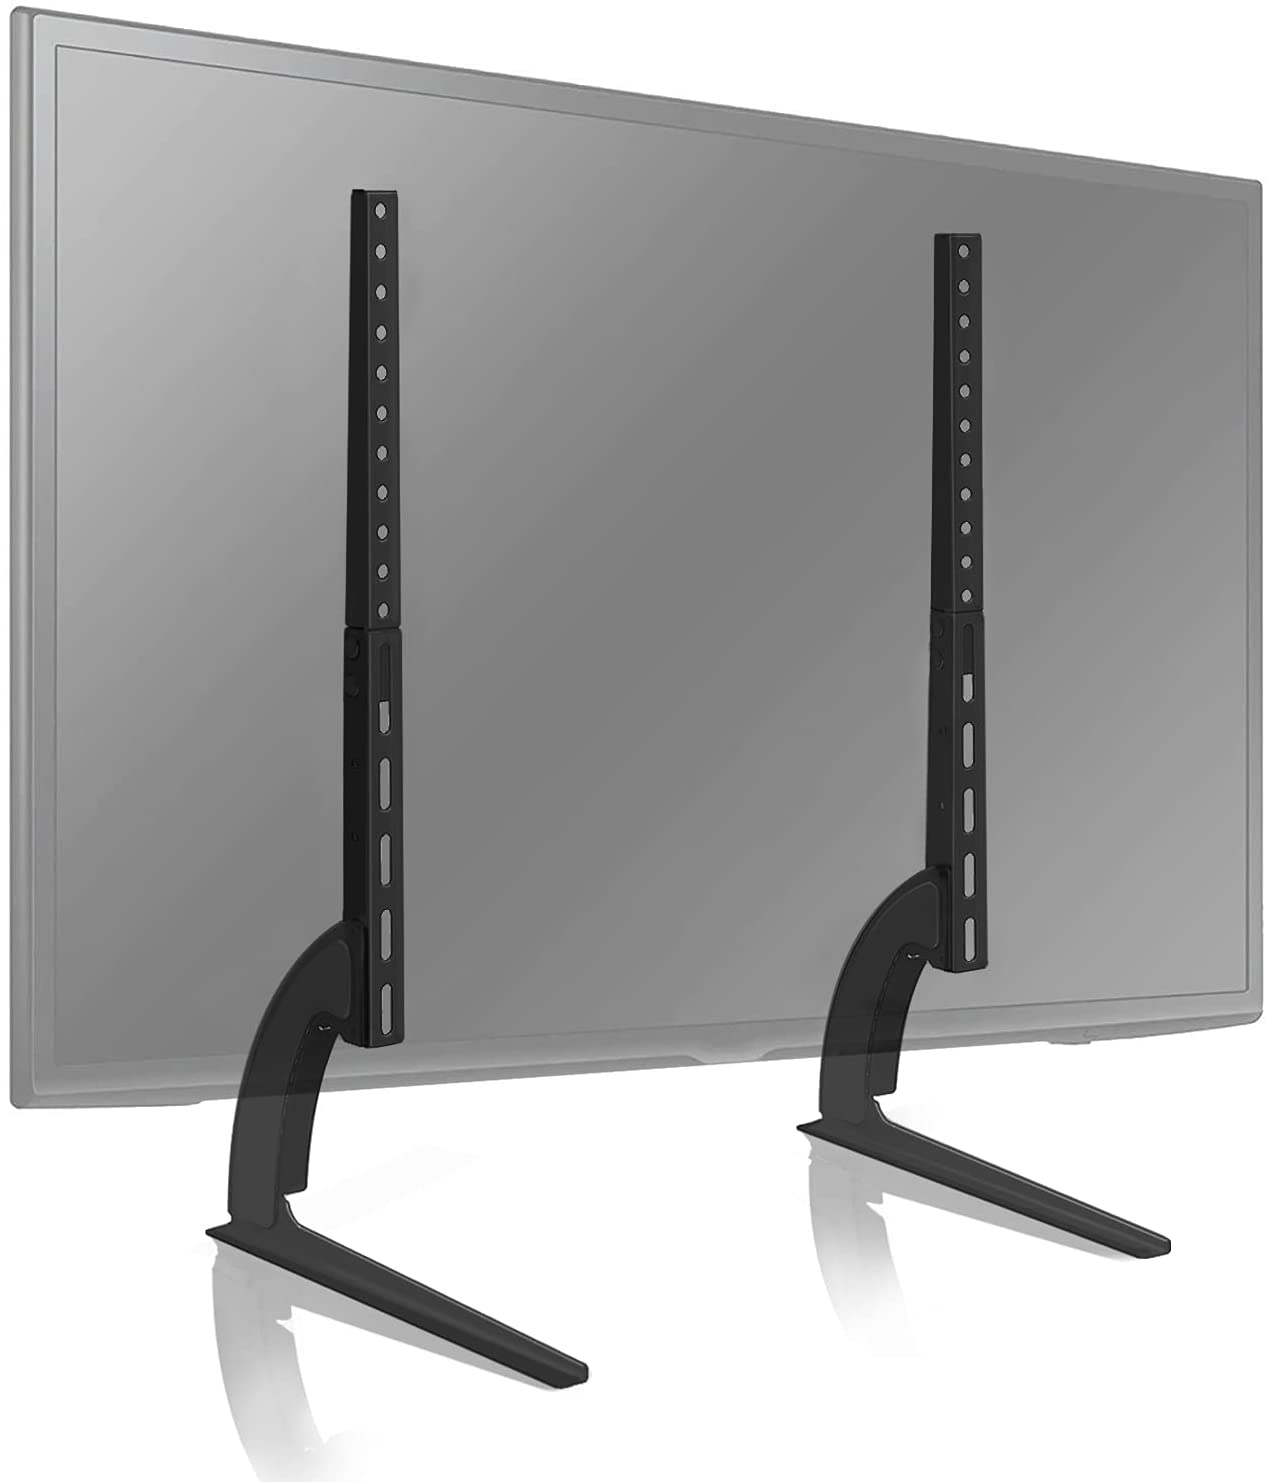 TAVR Universal Table Top TV Stand for Most 27 30 32 37 40 43 47 50 55 60 65 inch Plasma LCD LED Flat or Curved Screen TVs with Height Adjustment, VESA Patterns up to 800mm x 500mm,88 Lbs